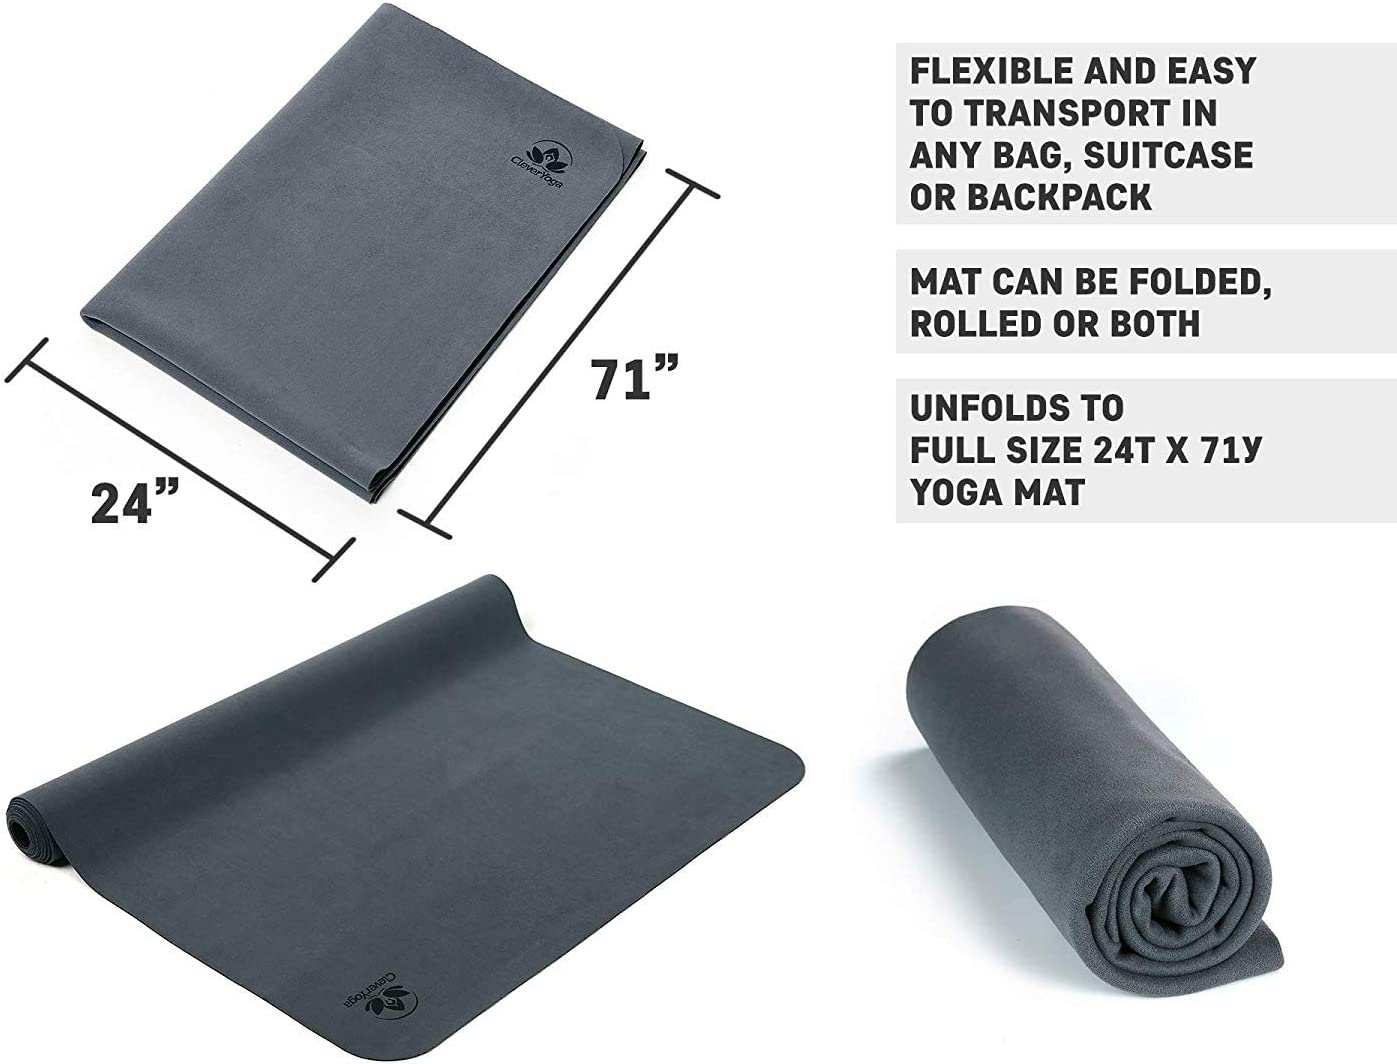 Travel Yoga Mat - Foldable, Absorbent and Machine Washable and Dry - Non Slip Yoga Mats for Bikram and Hot Yoga - YogiOnTheGo Thin Hot Yoga Mat